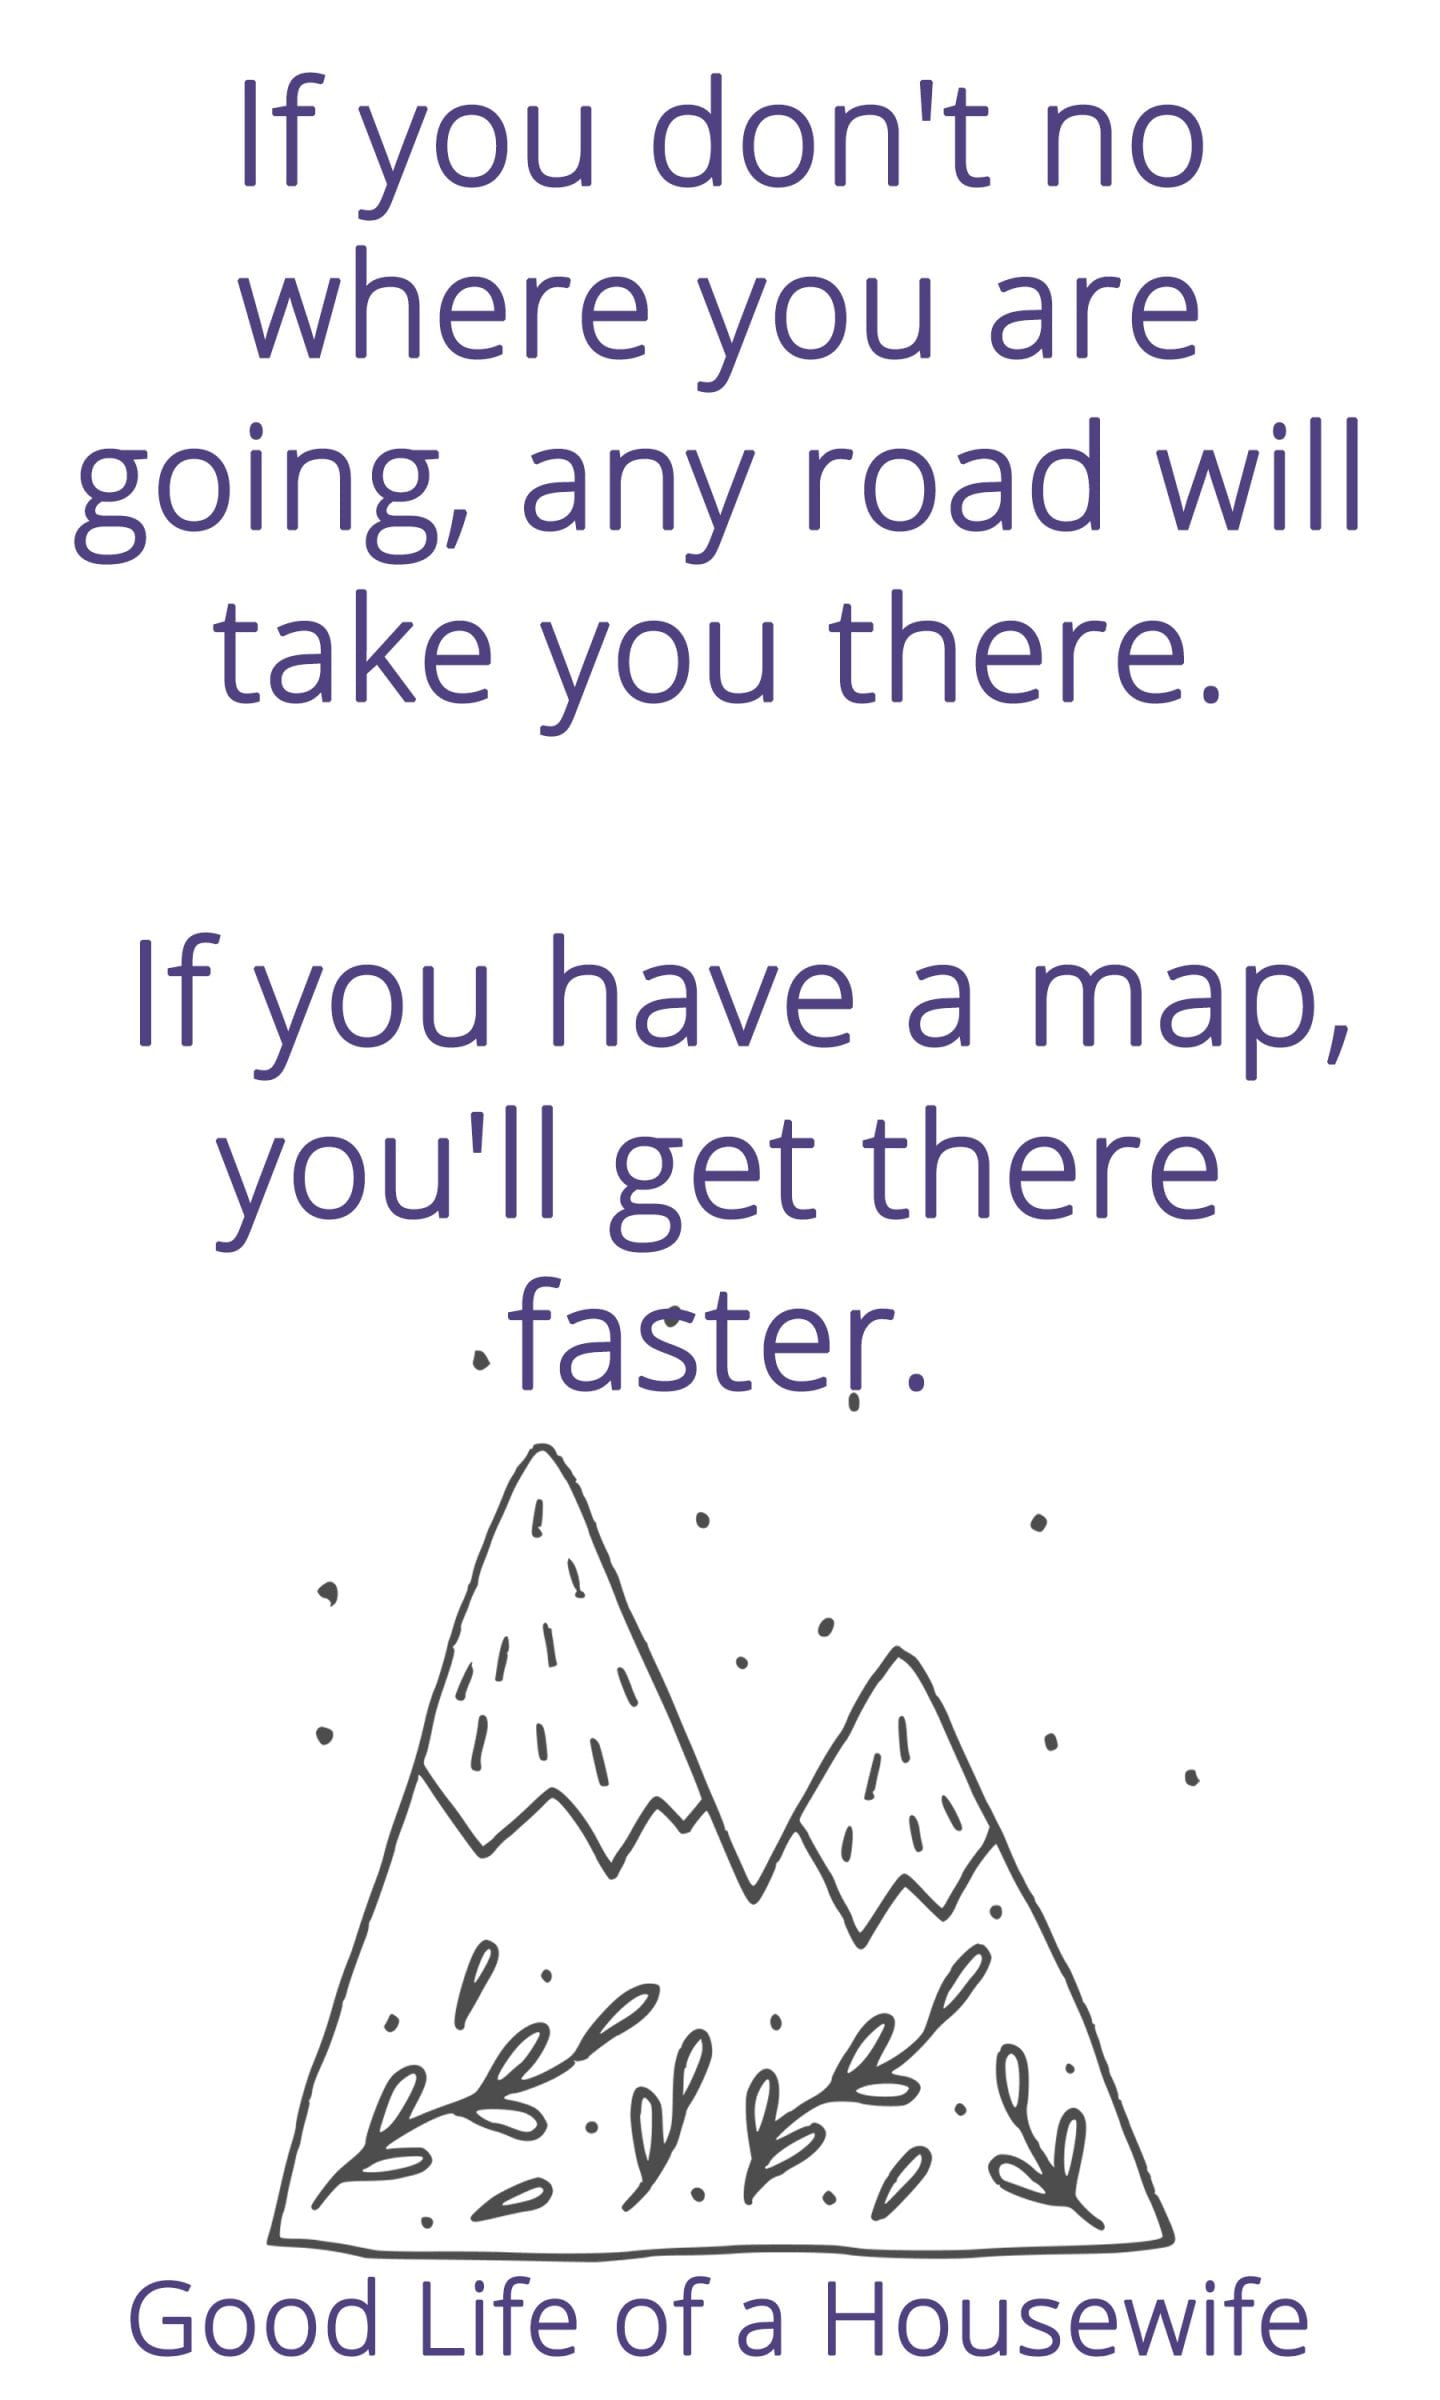 If you don't no where you are going, any road will take you there. If you have a map, you'll get there faster. A budget is a map. Cash is your vehicle, and your dollars are the gas. Don't blow cash on joyrides, when it can be save for road trips.